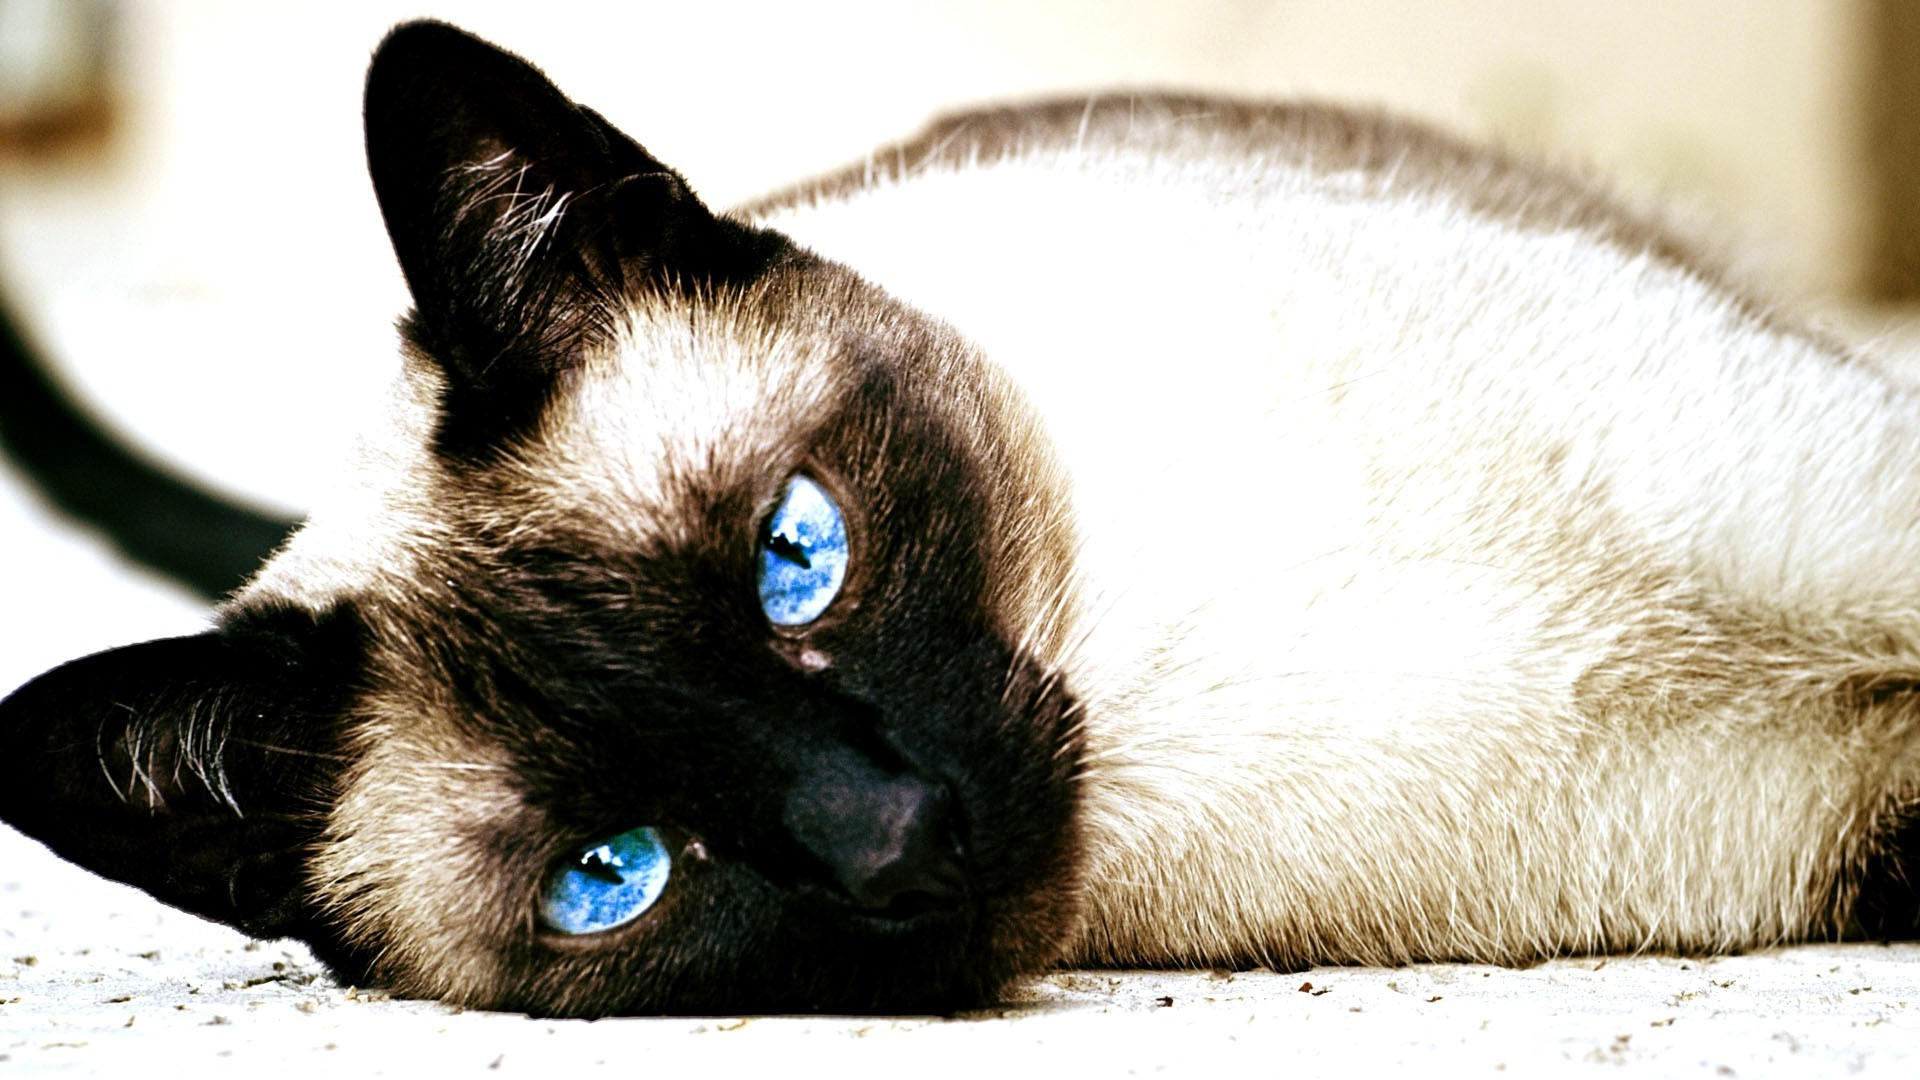 1920x1080 1680x1050 animals cat depth of field bricks siamese cats wallpaper and  background JPG 185 kB